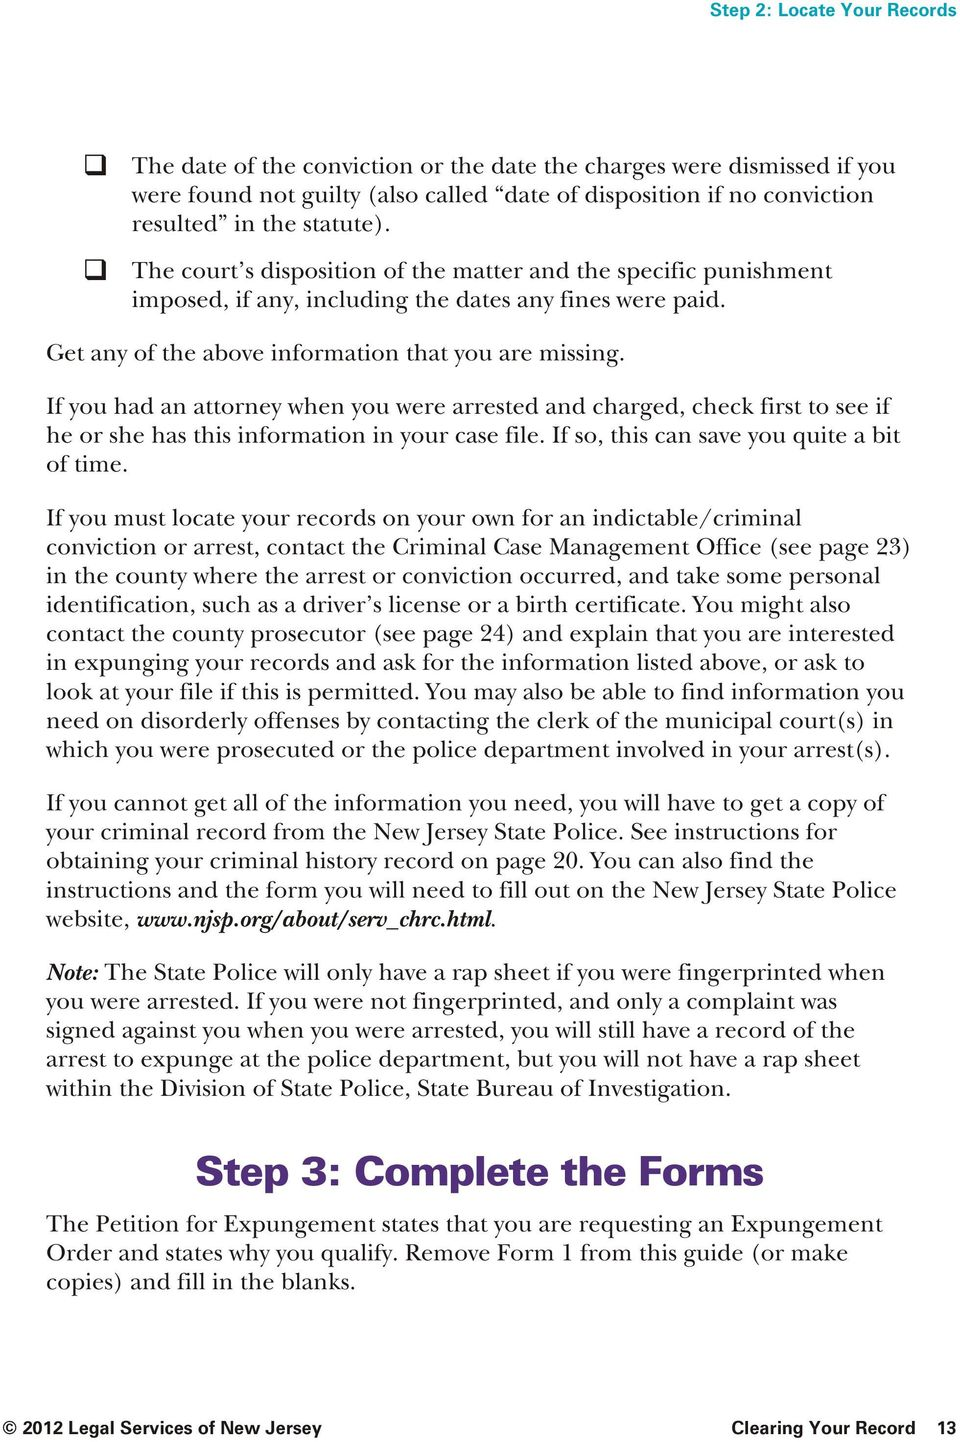 If you had an attorney when you were arrested and charged, check first to see if he or she has this infor ma tion in your case file. If so, this can save you quite a bit of time.